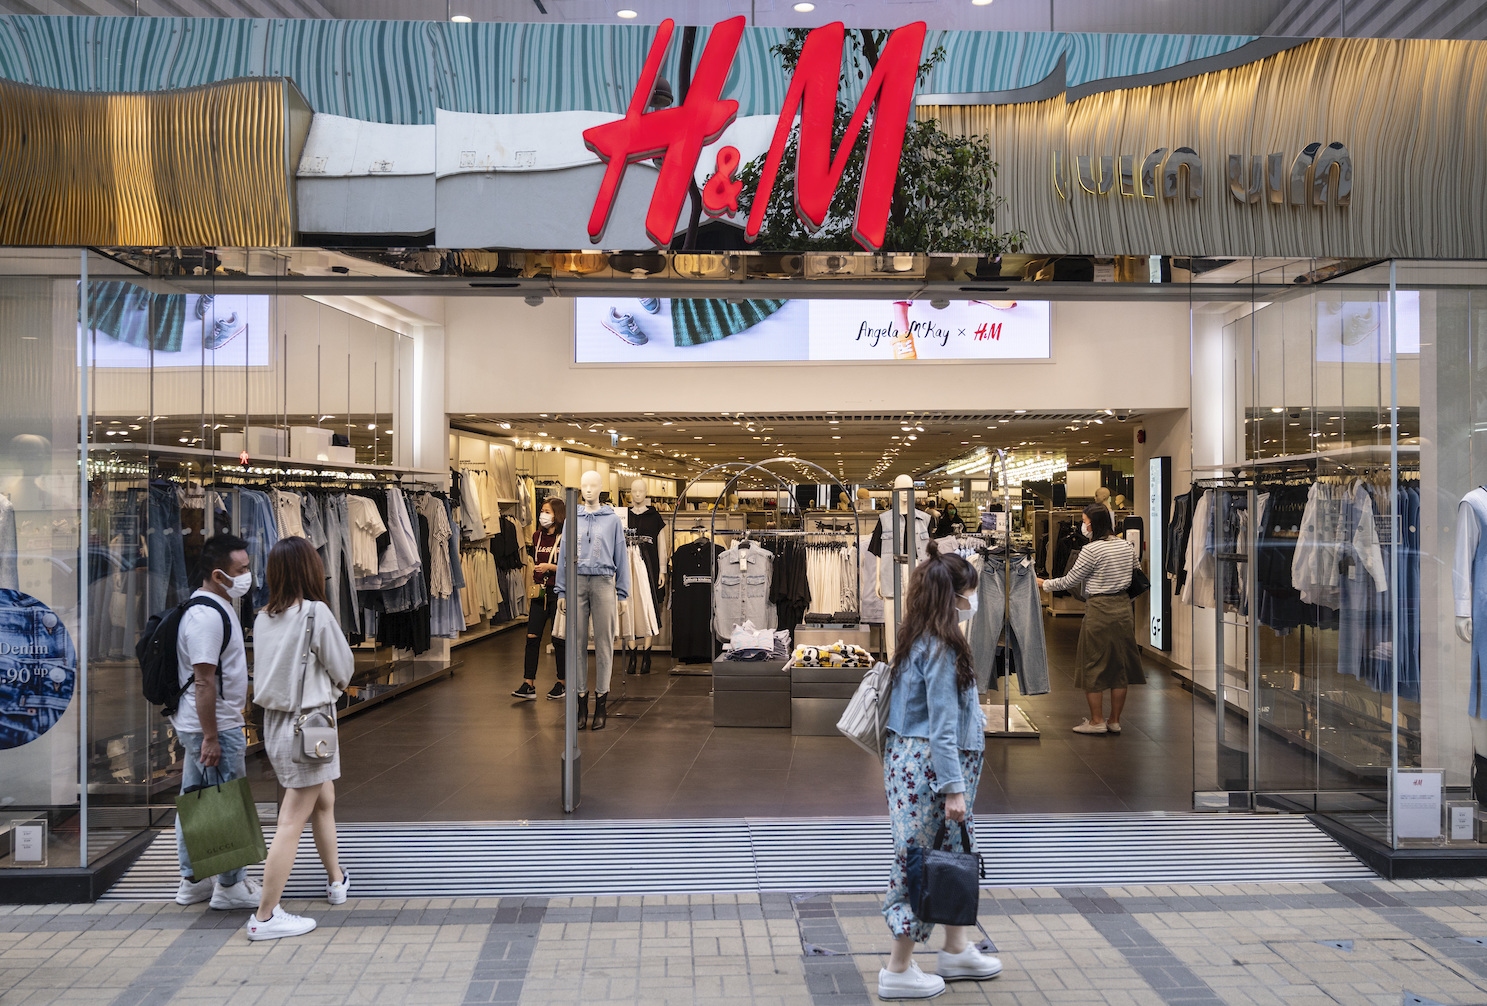 Hennes and Mauritz rebounded in Q2 with 75 percent sales growth to $5.4 billion, but boycotts over Xinjiang seemed to chill sales in China.